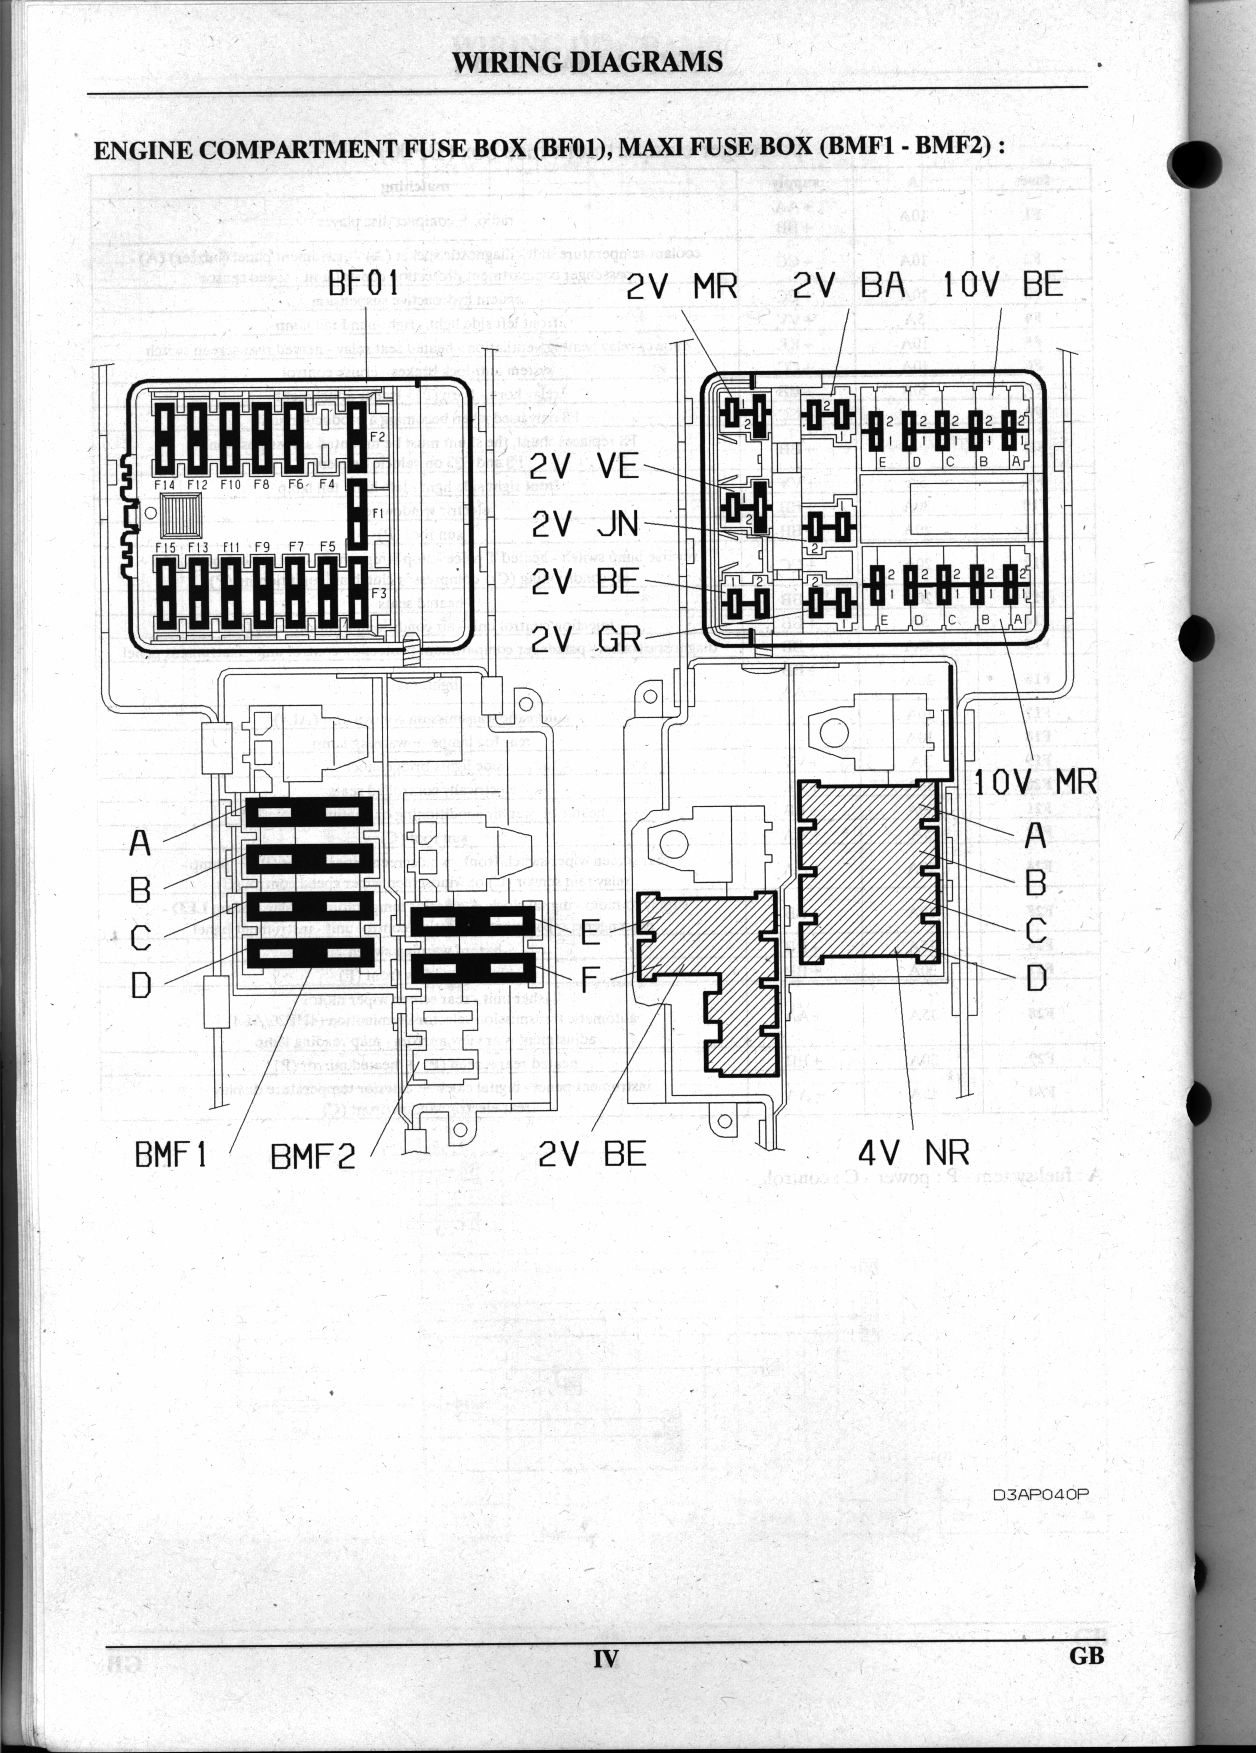 citroen berlingo 2002 fuse box diagram wiring library chrysler fuse box mk2ebfb_1 citroen saxo fuse box diagram 2004 ford explorer fuse box diagram citroen saxo fuse box